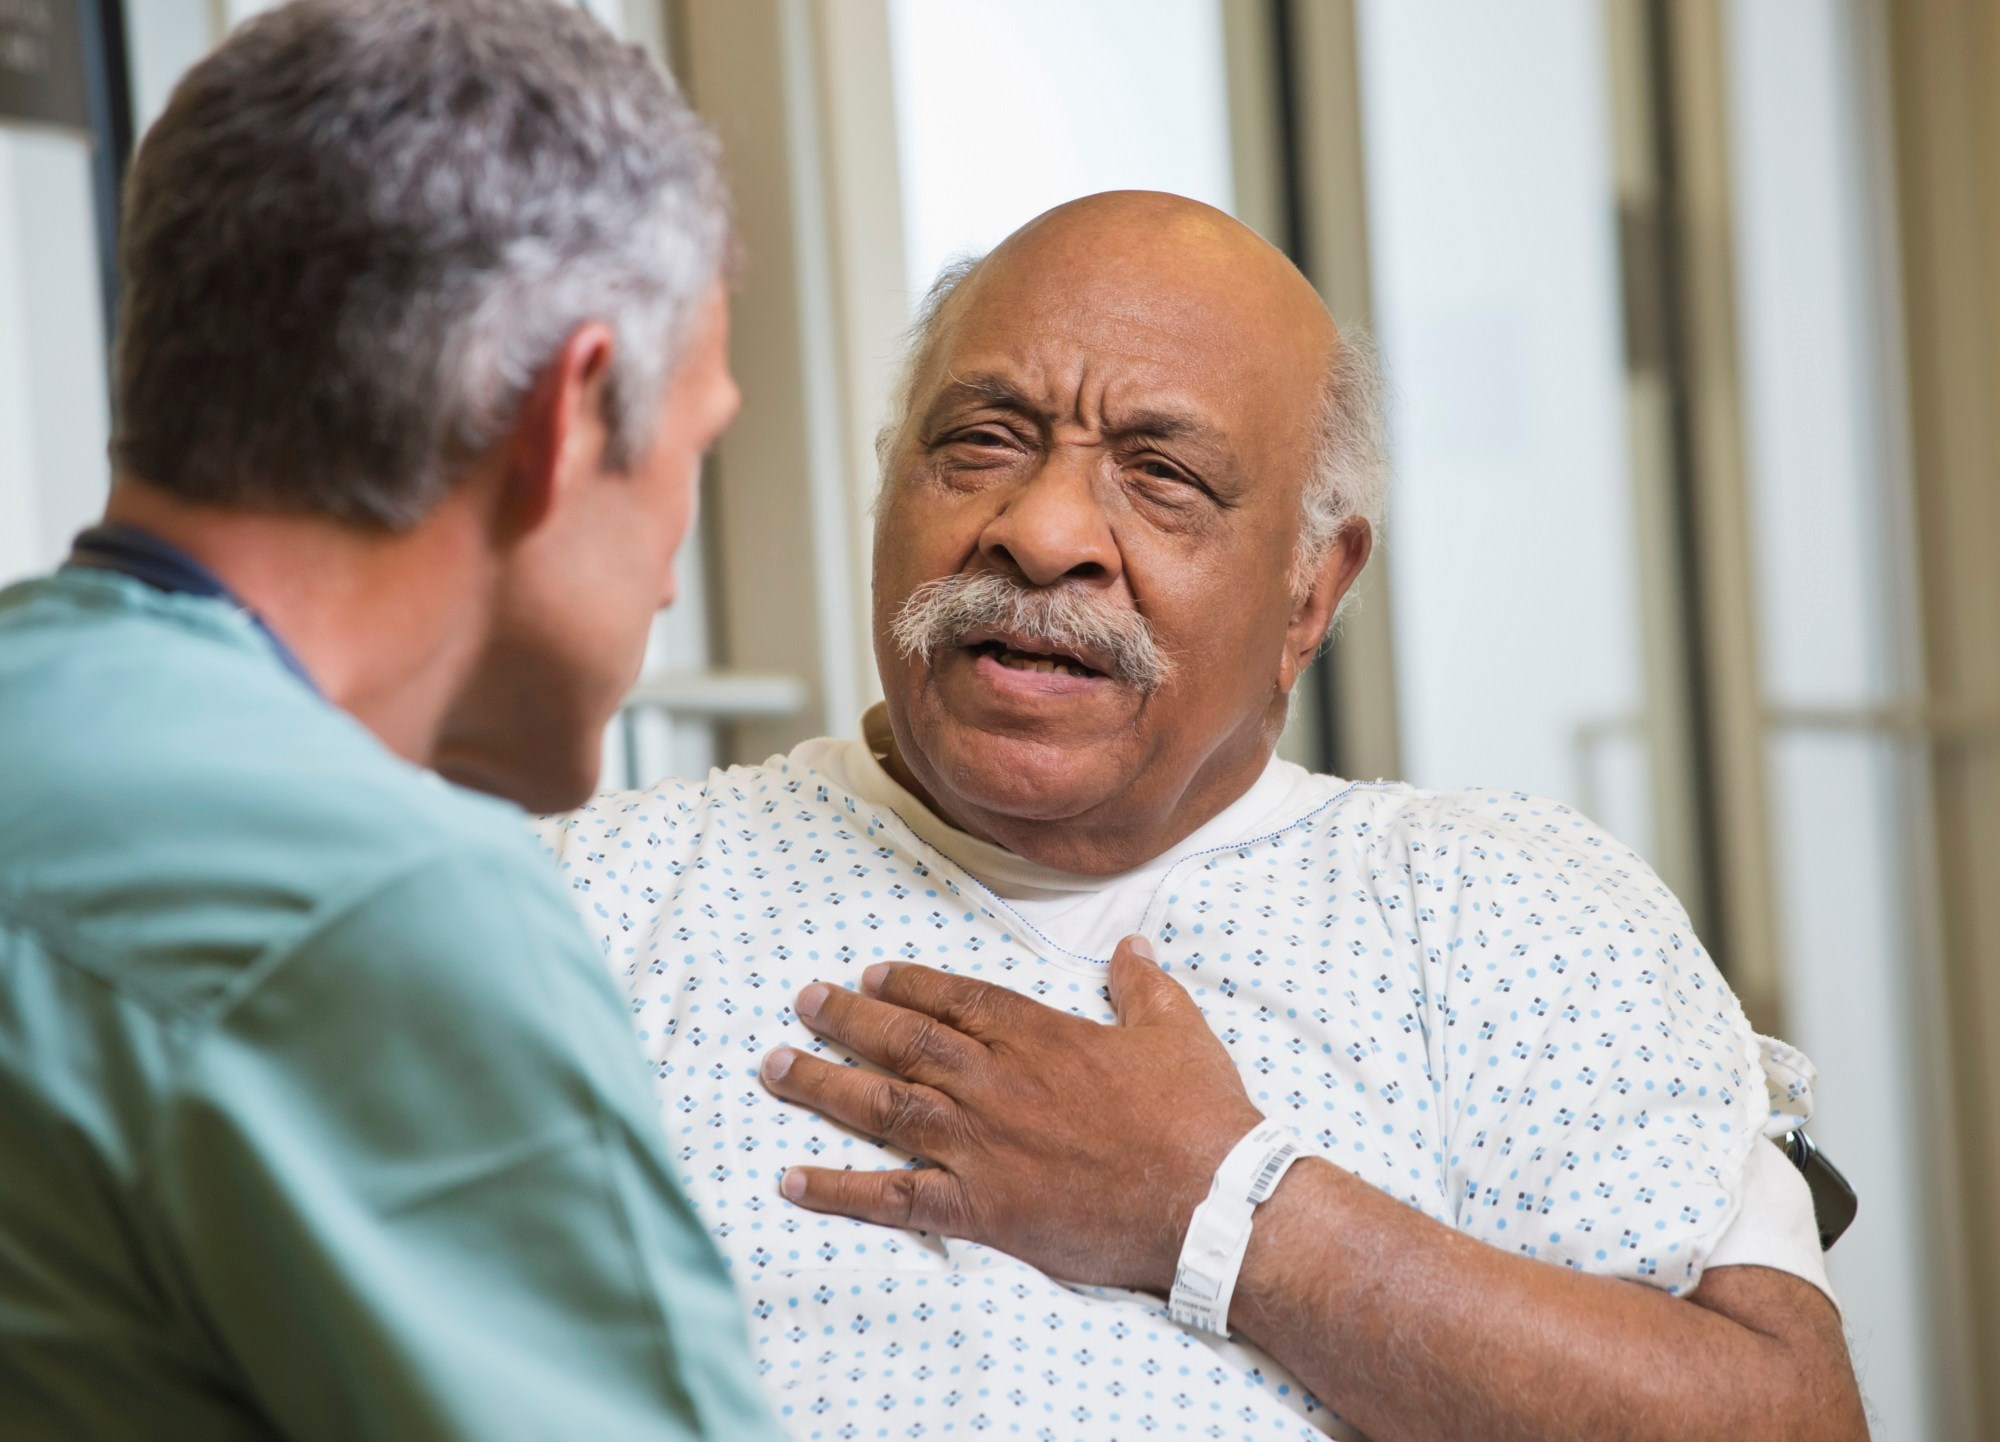 Hypertension Risk Elevated in Blacks Through Age 55